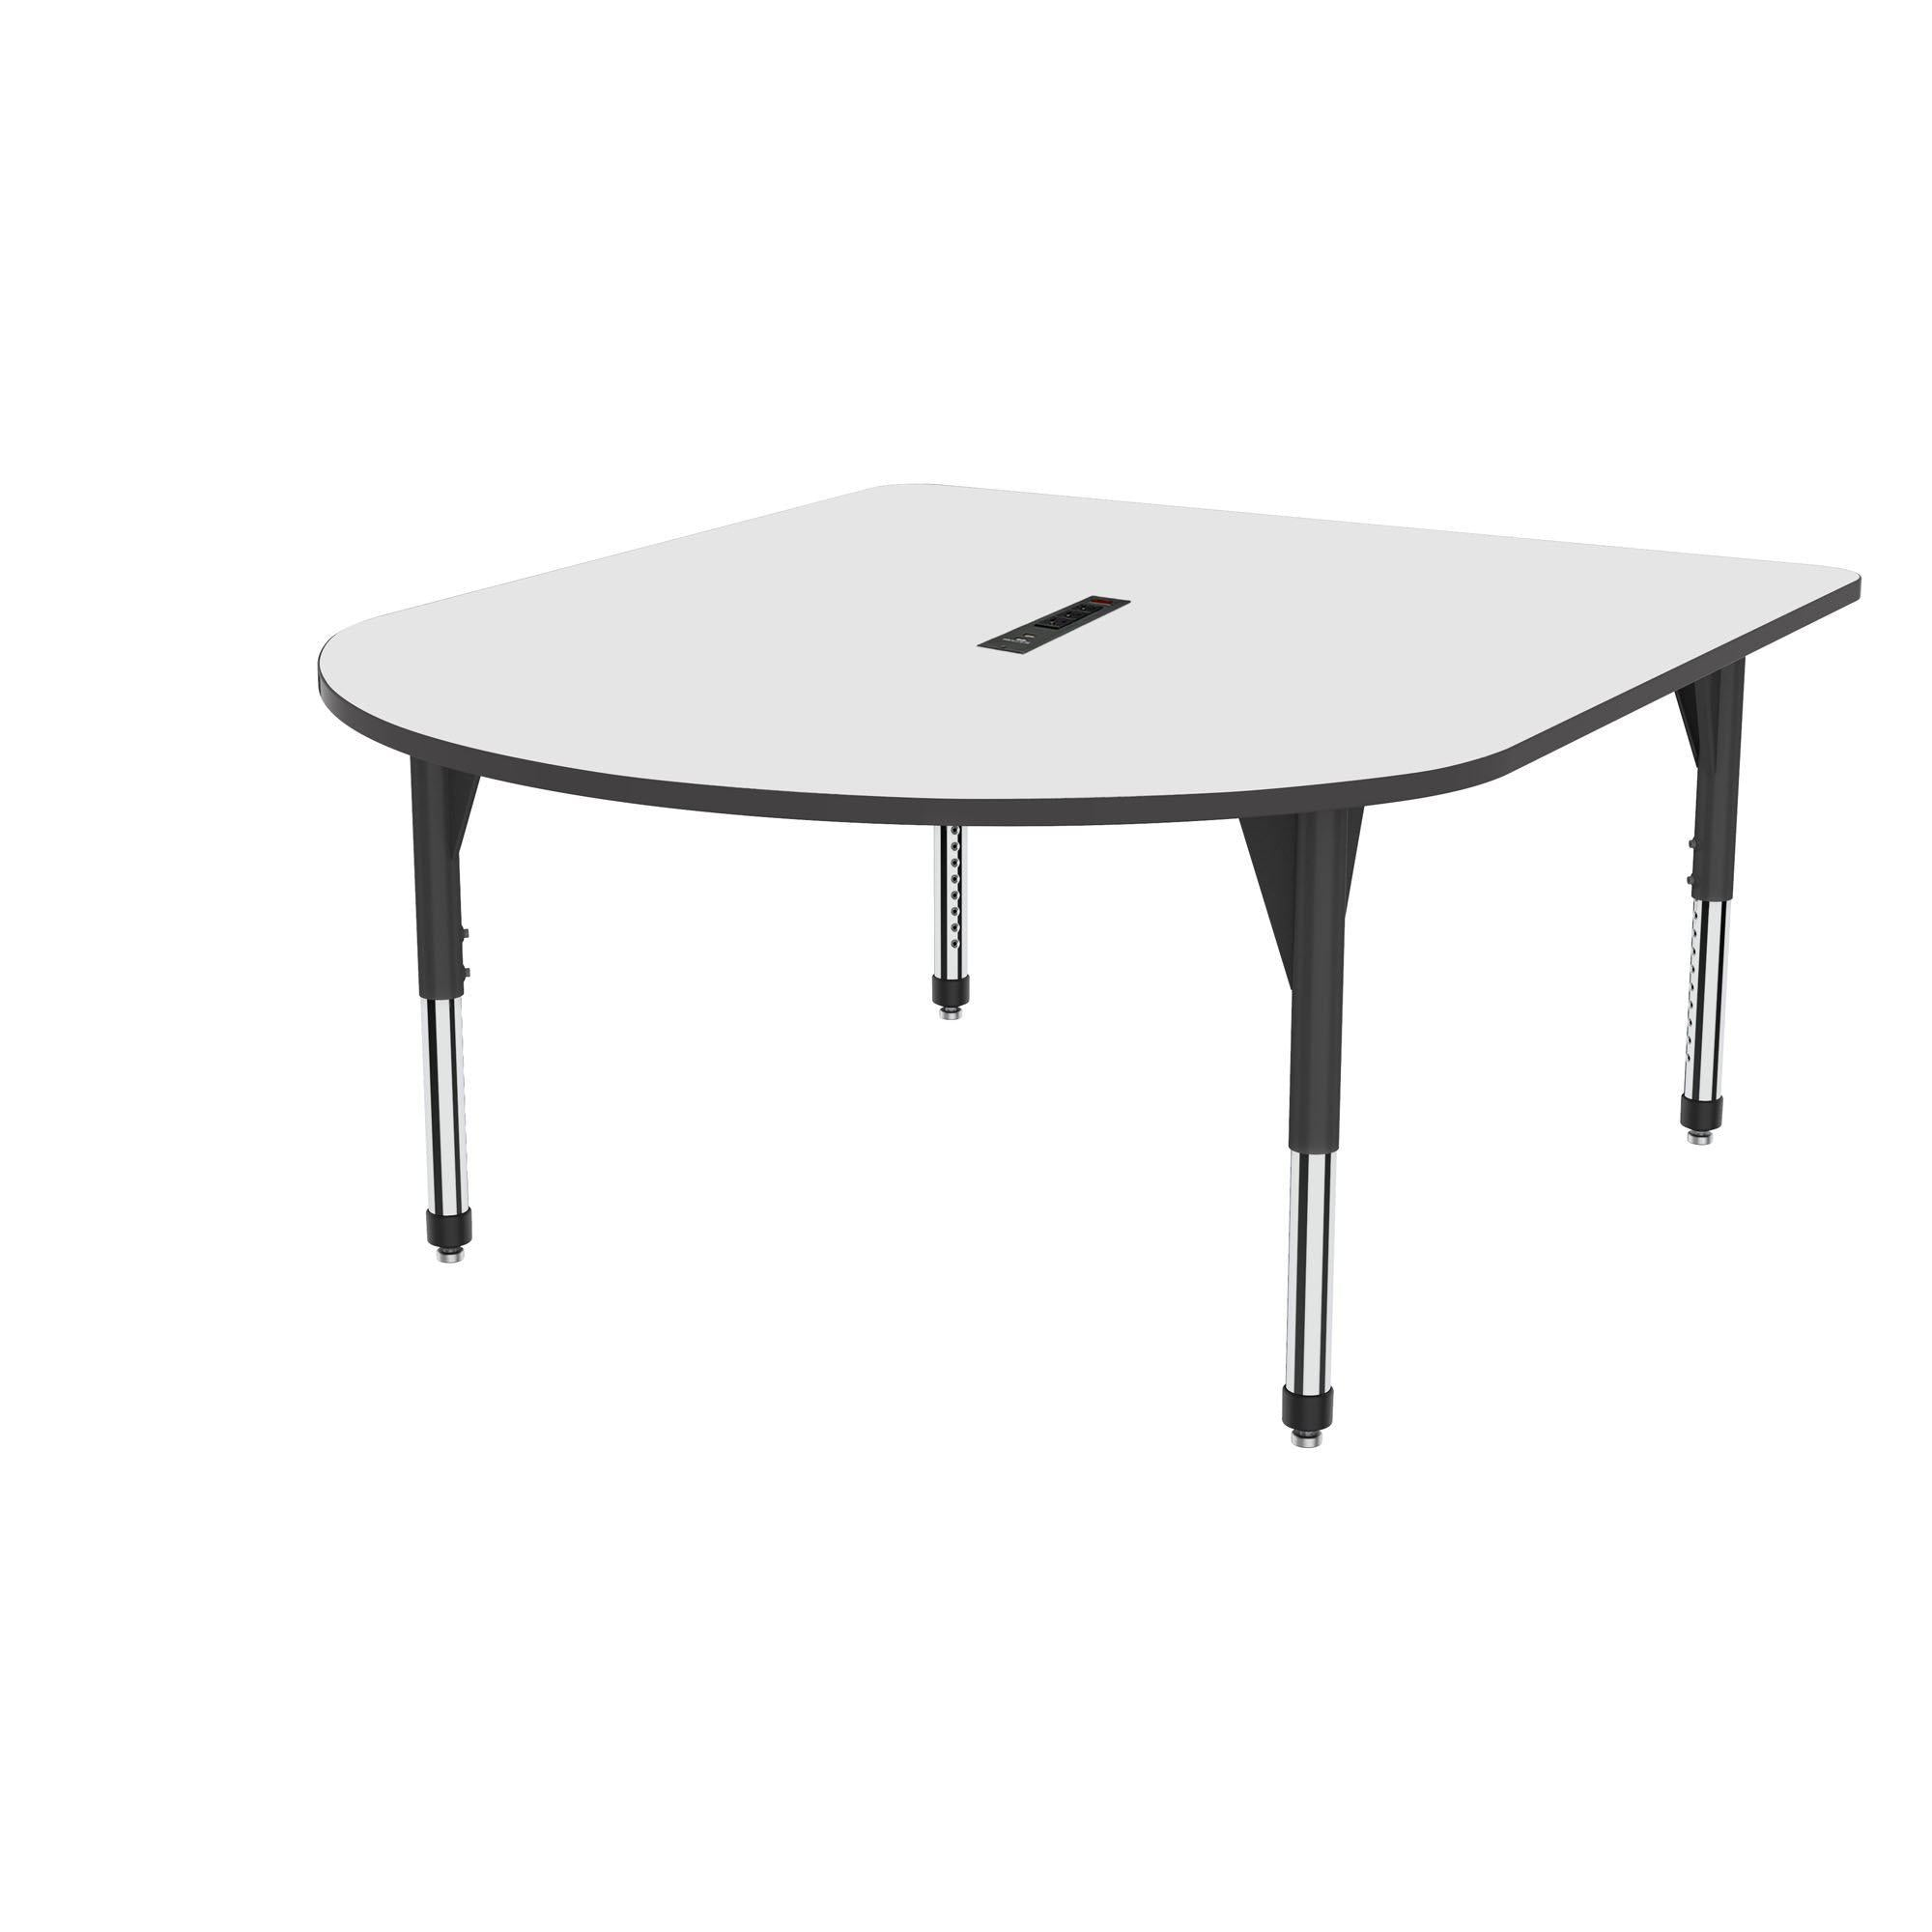 "Premier Series Multimedia Tables with White Dry-Erase Top and Power Module, 60"" x 72""-Tables-Sitting (21"" - 31"")-White Dry Erase/Black-Black"